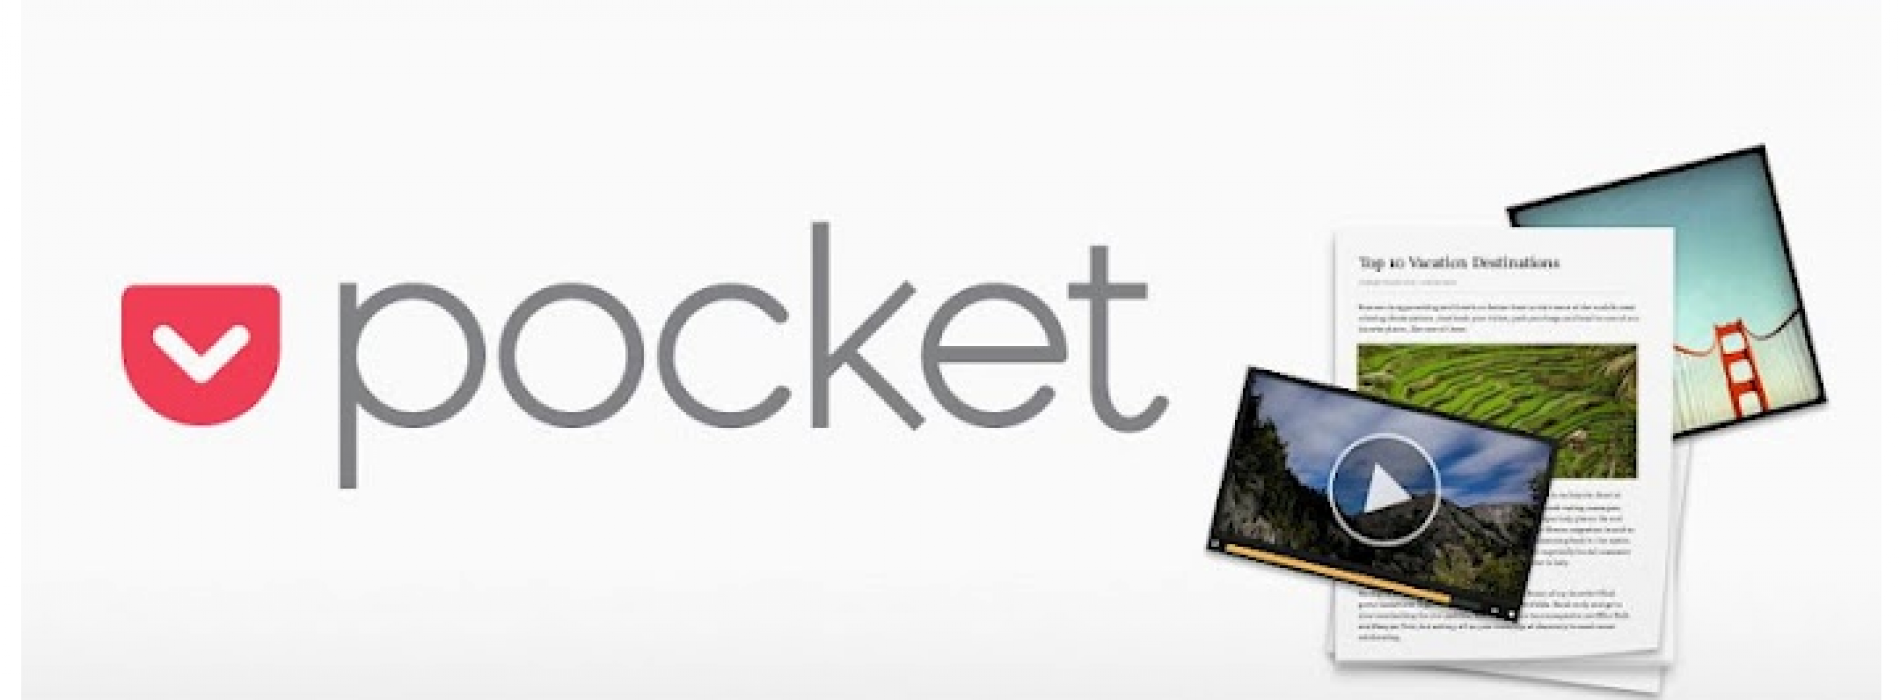 Pocket creates #WatchItLater for video discovery